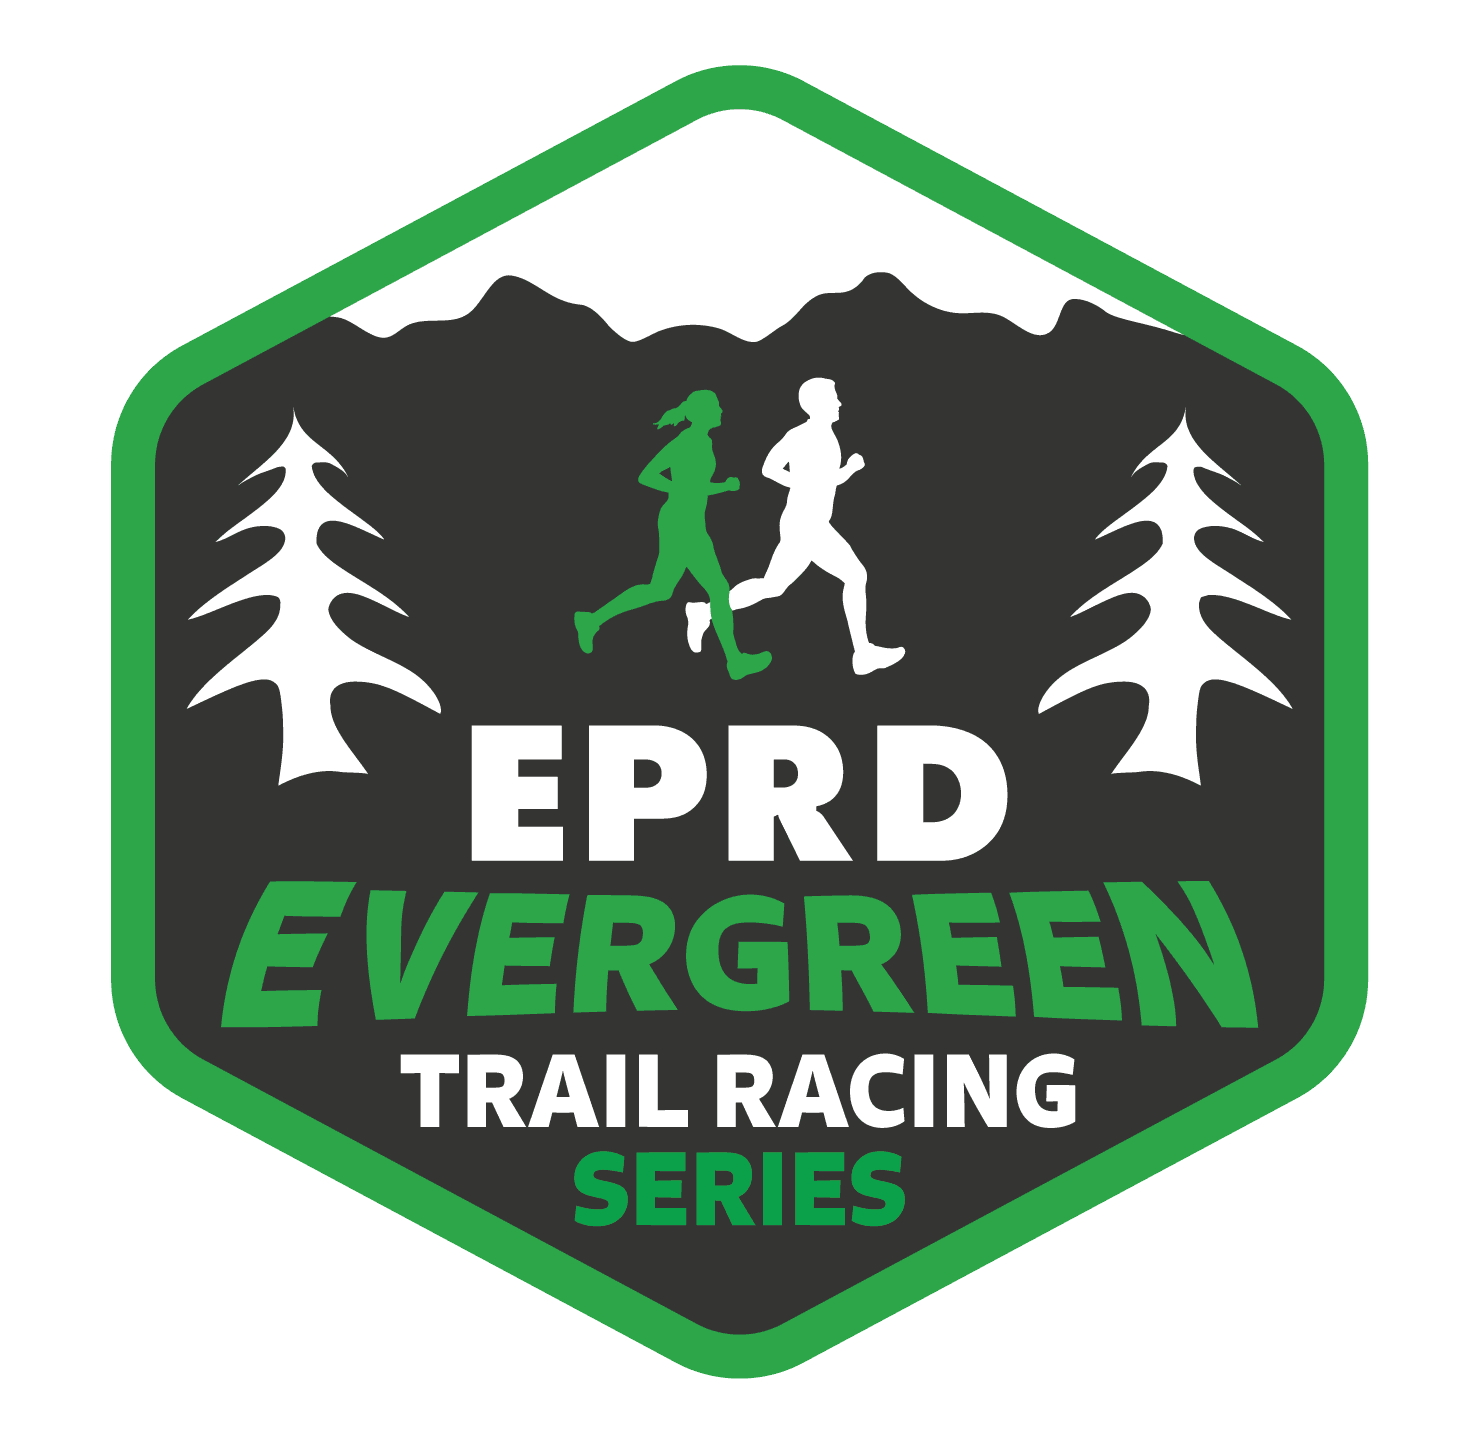 Evergreen Trail Racing Series